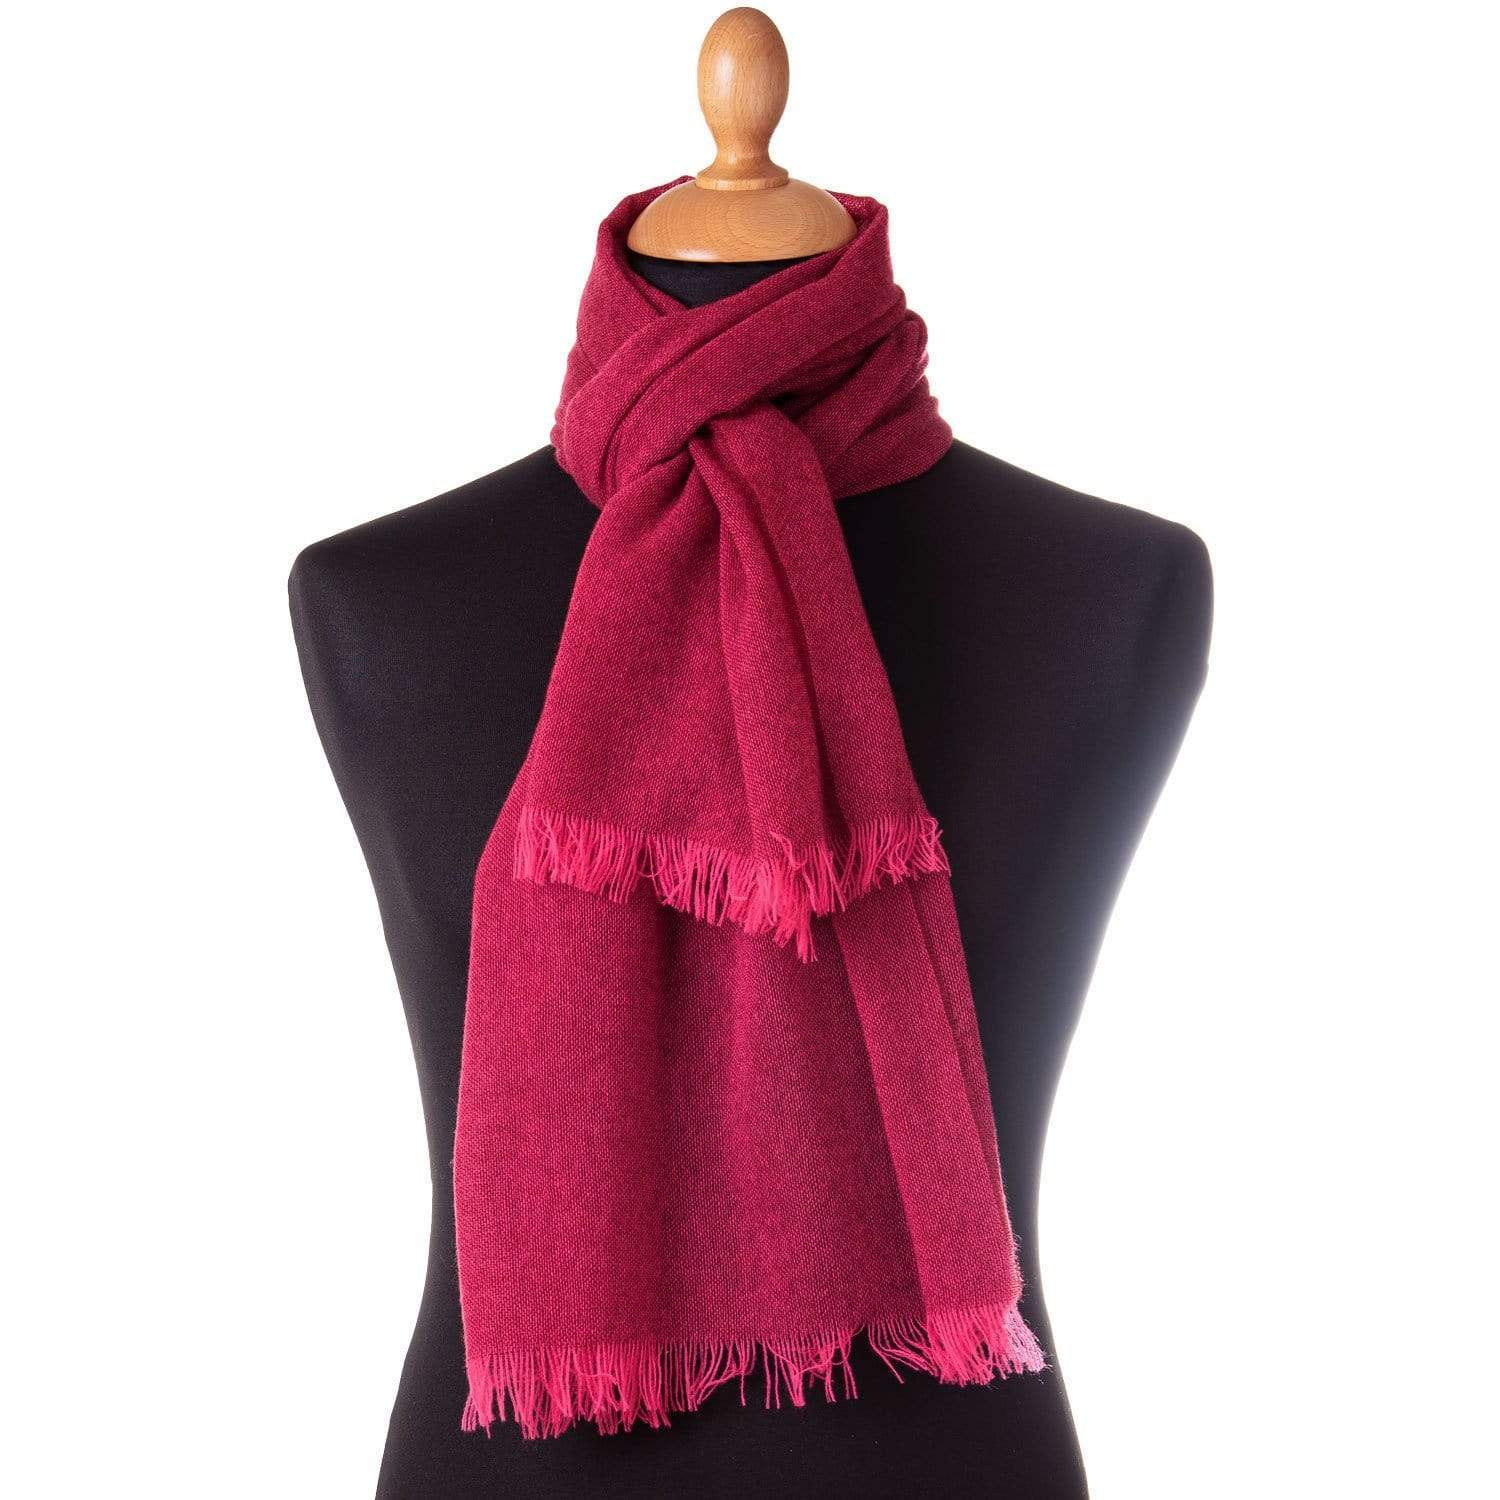 Red Cashmere Scarf - Italian Lightweight Wide Wrap